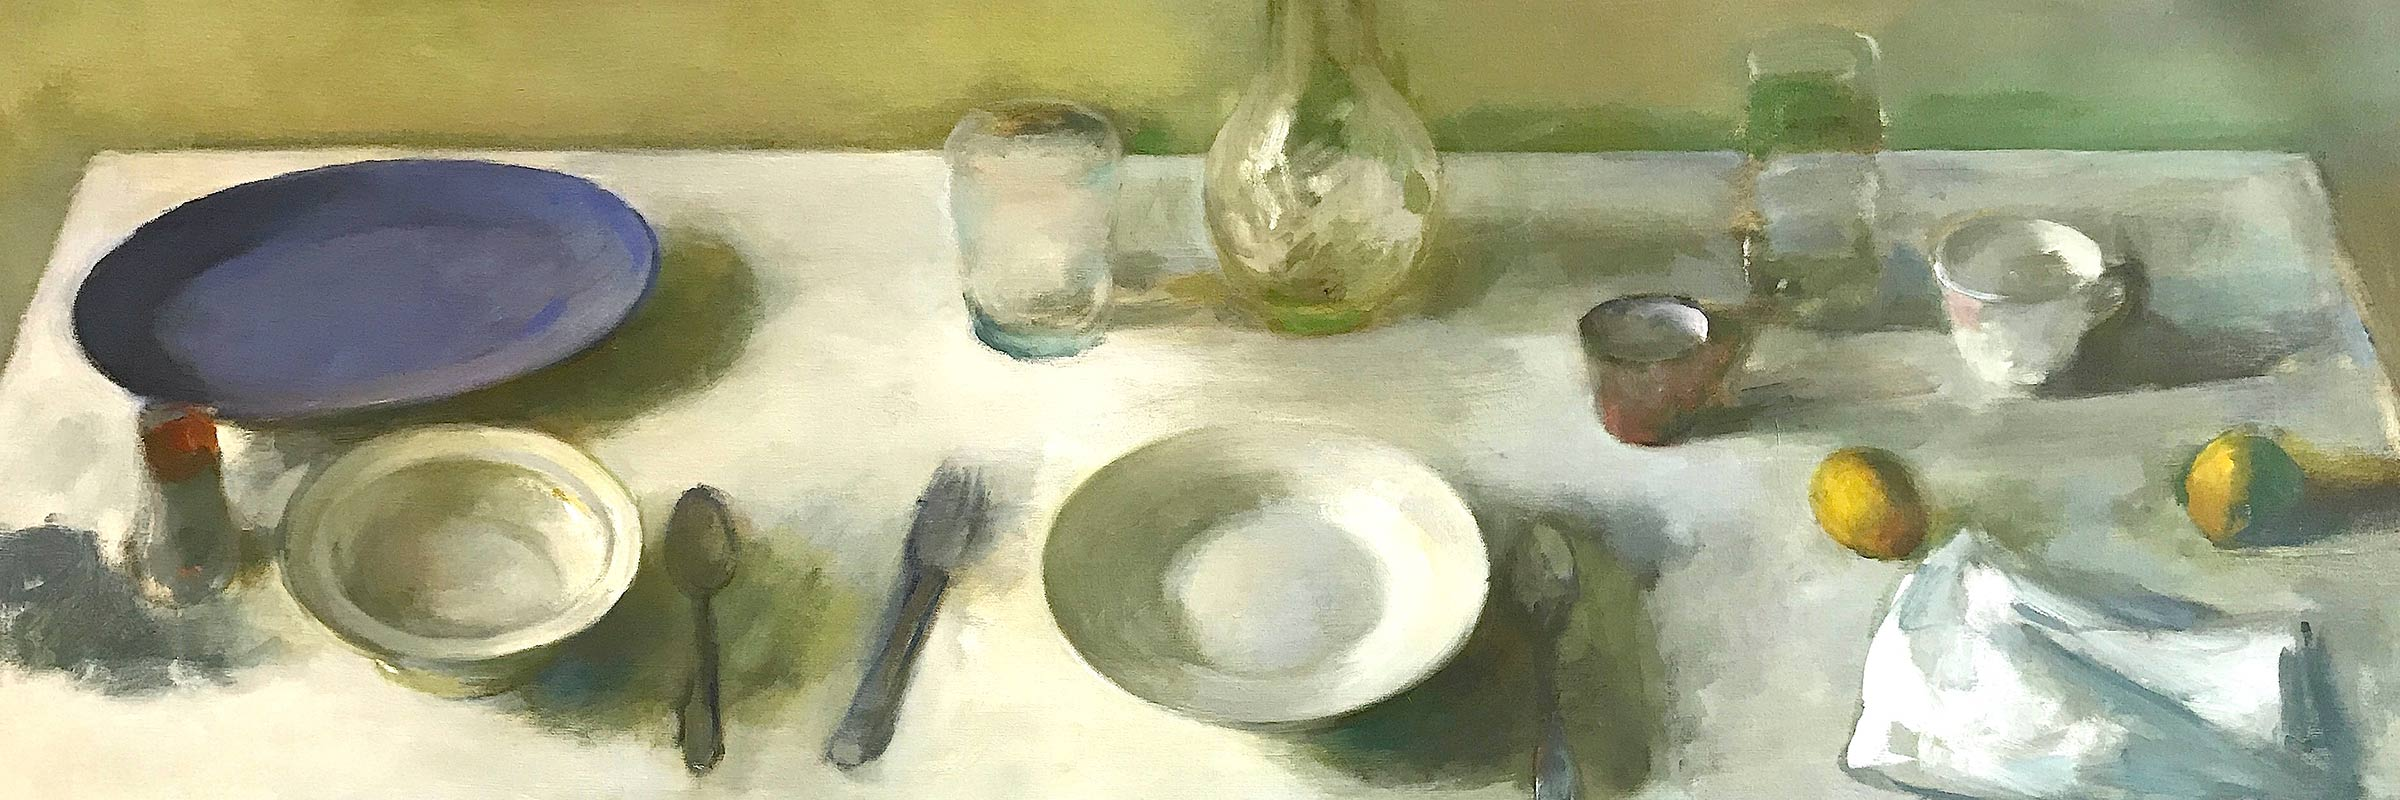 table-setting-with-blue-plate-and-two-lemons-s